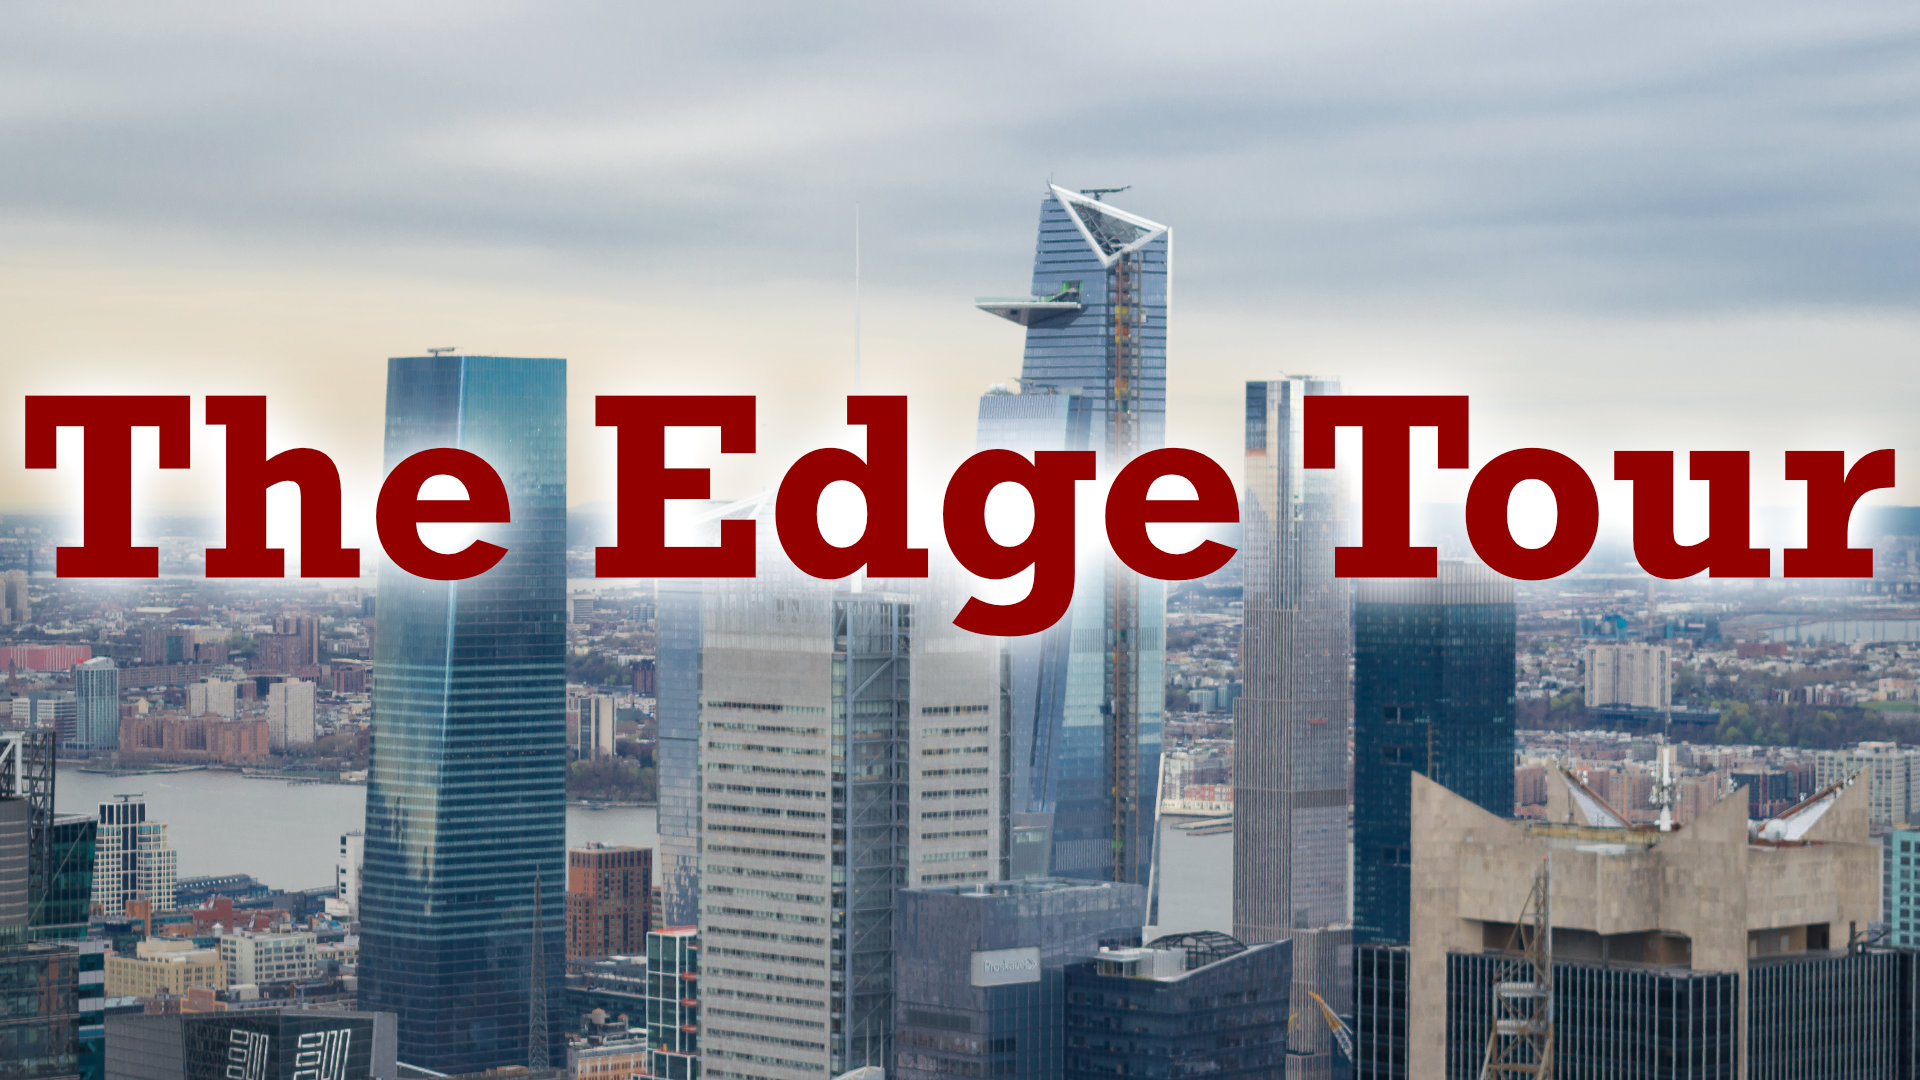 the edge tour getyourguide